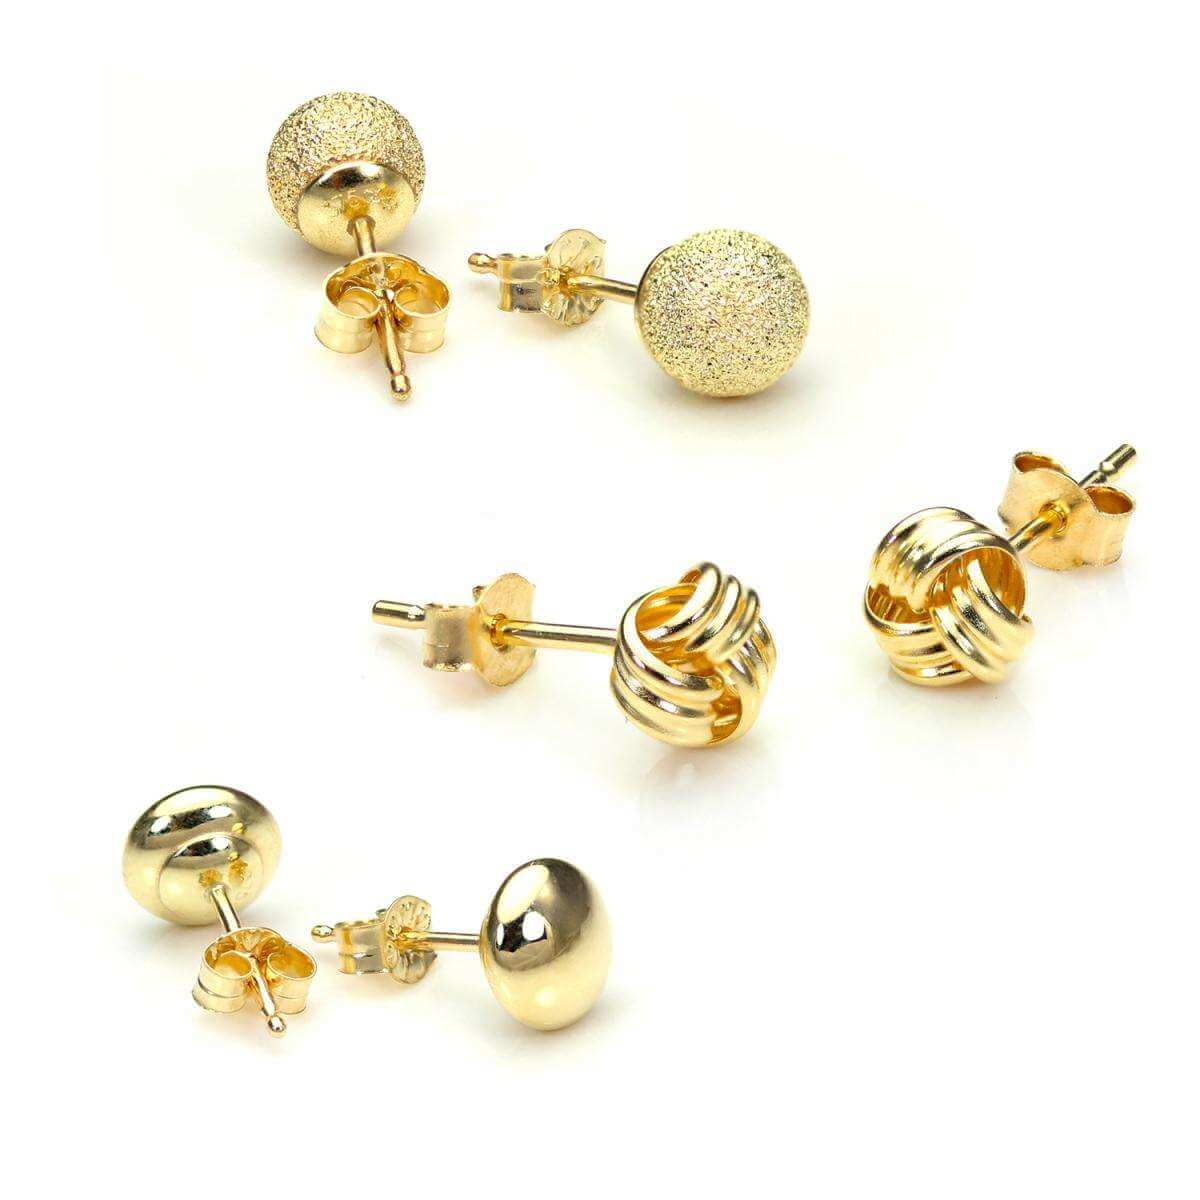 9ct Gold Classic Luxury 5mm Stud Earrings Set